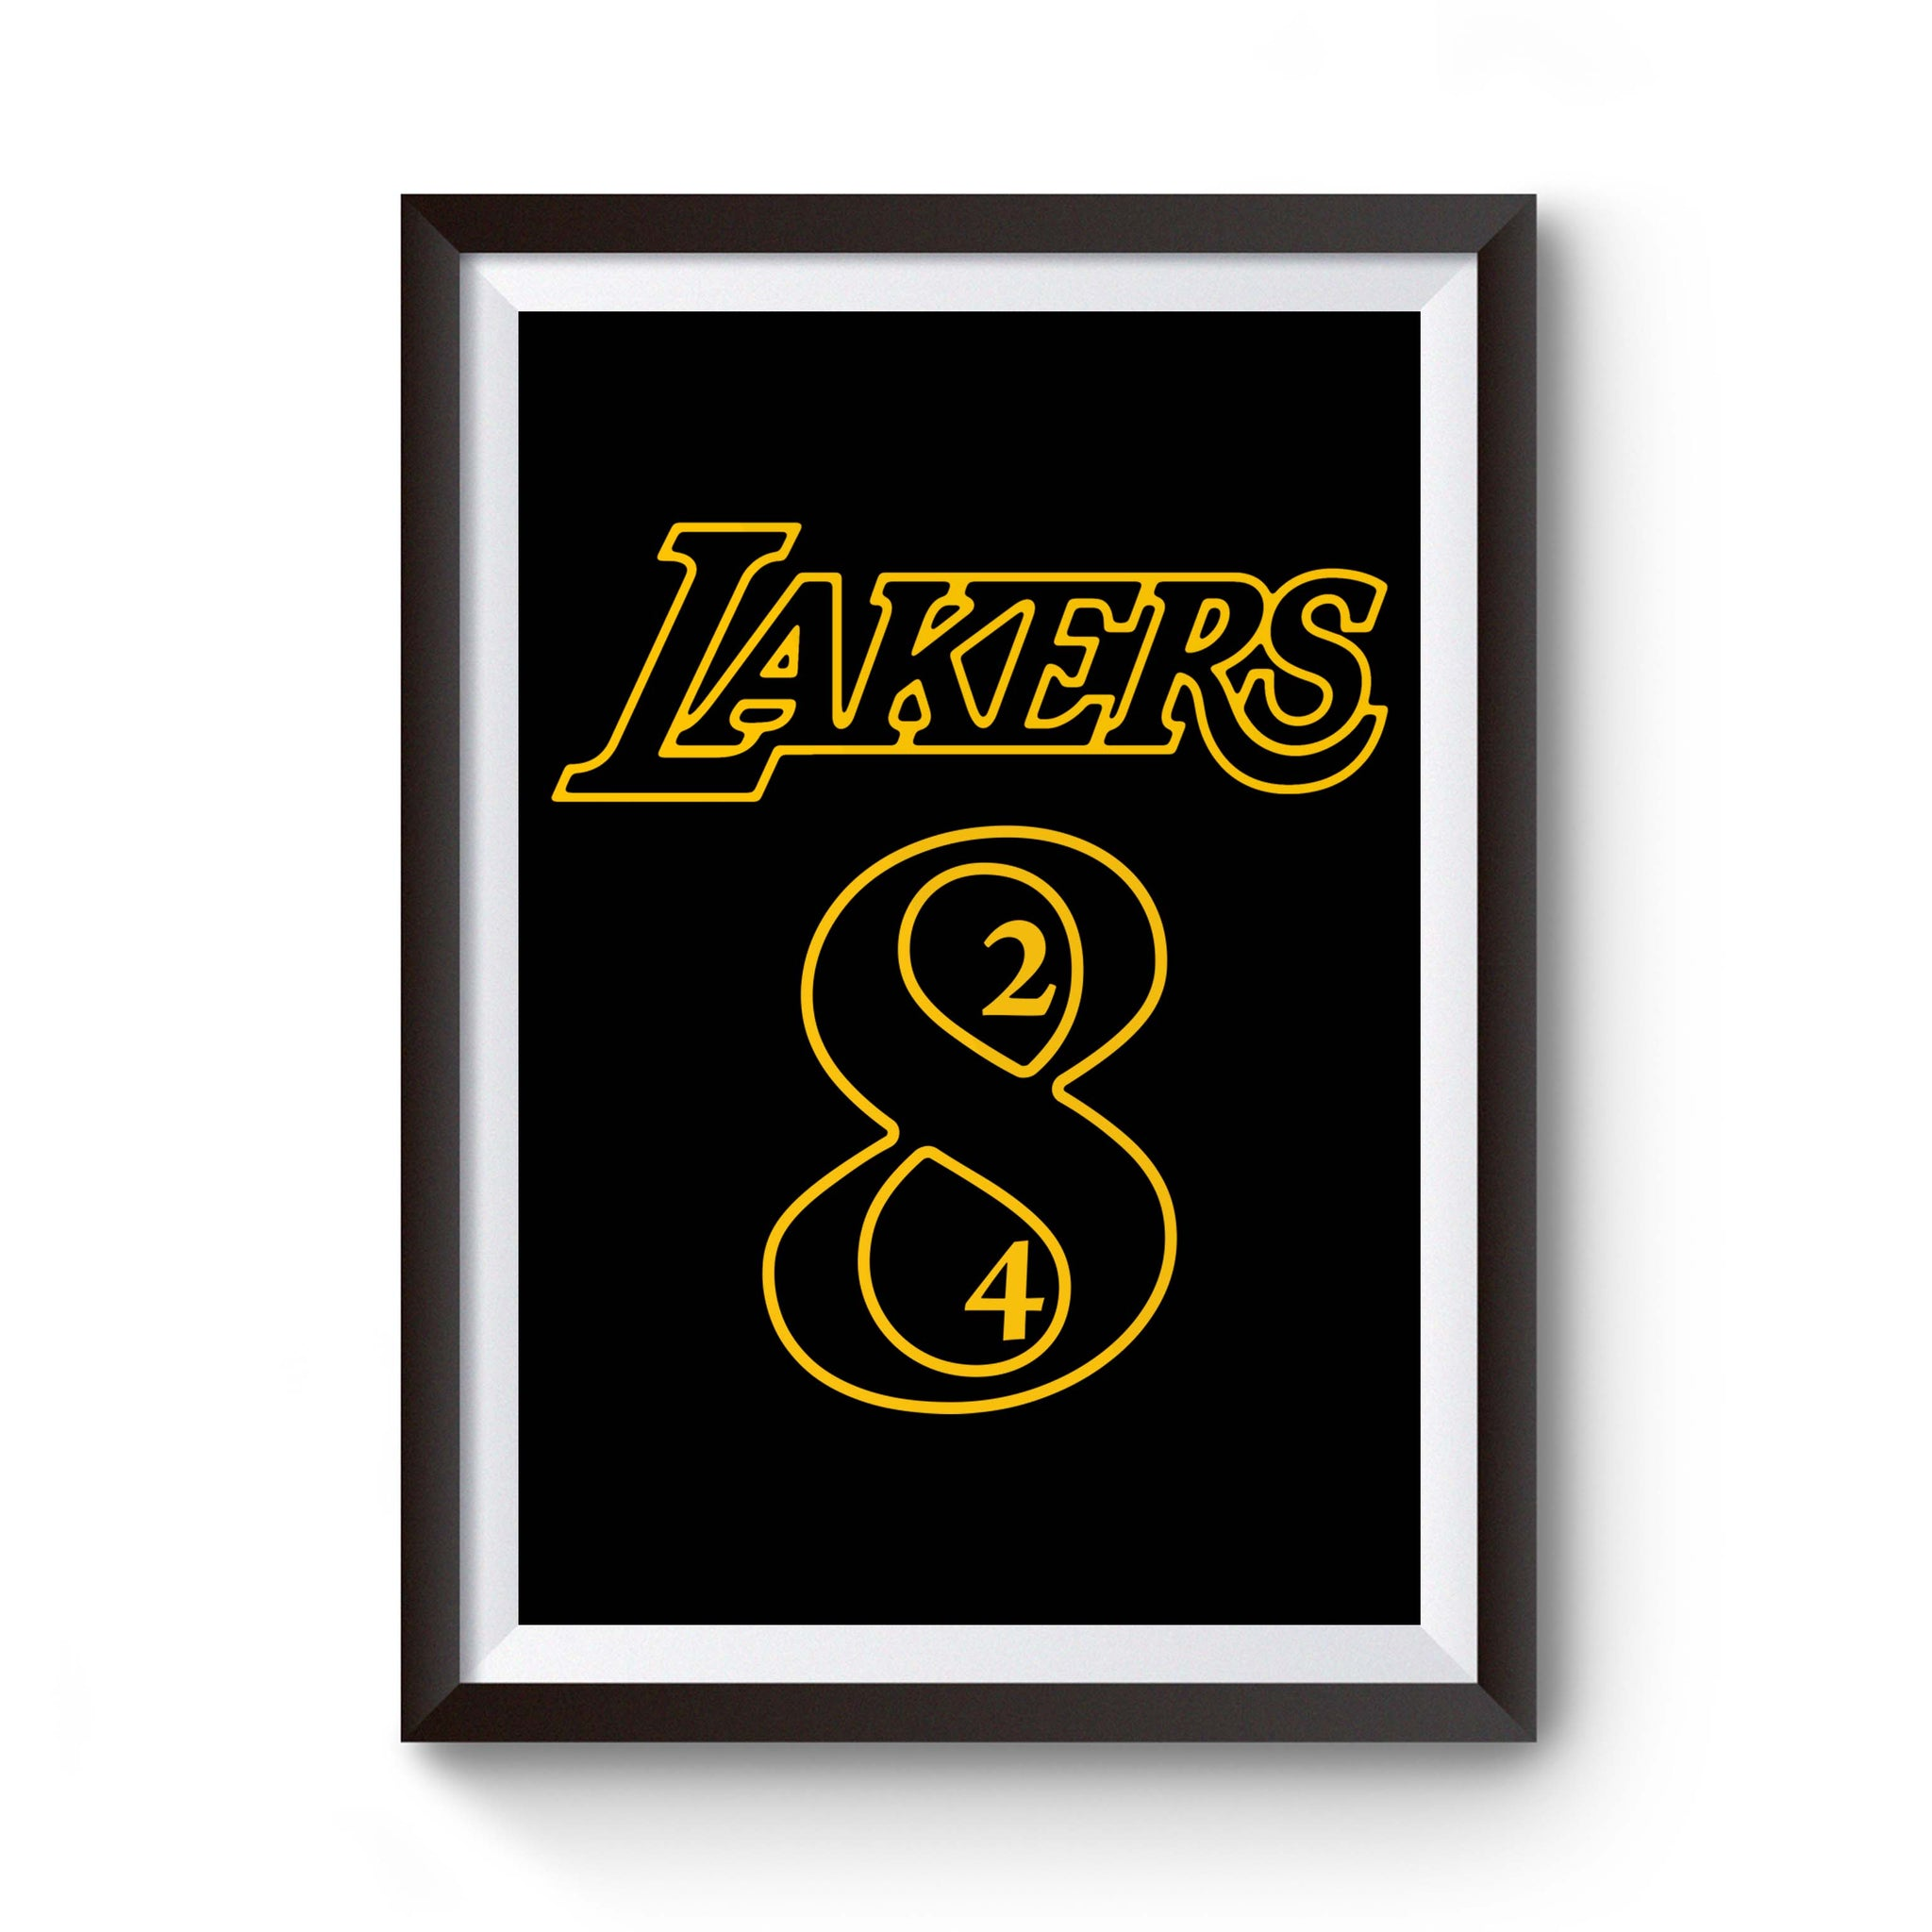 Los Angeles La Laker Legend Kobe Bryant Retiring 8 And 24 Jersey Numbers Poster